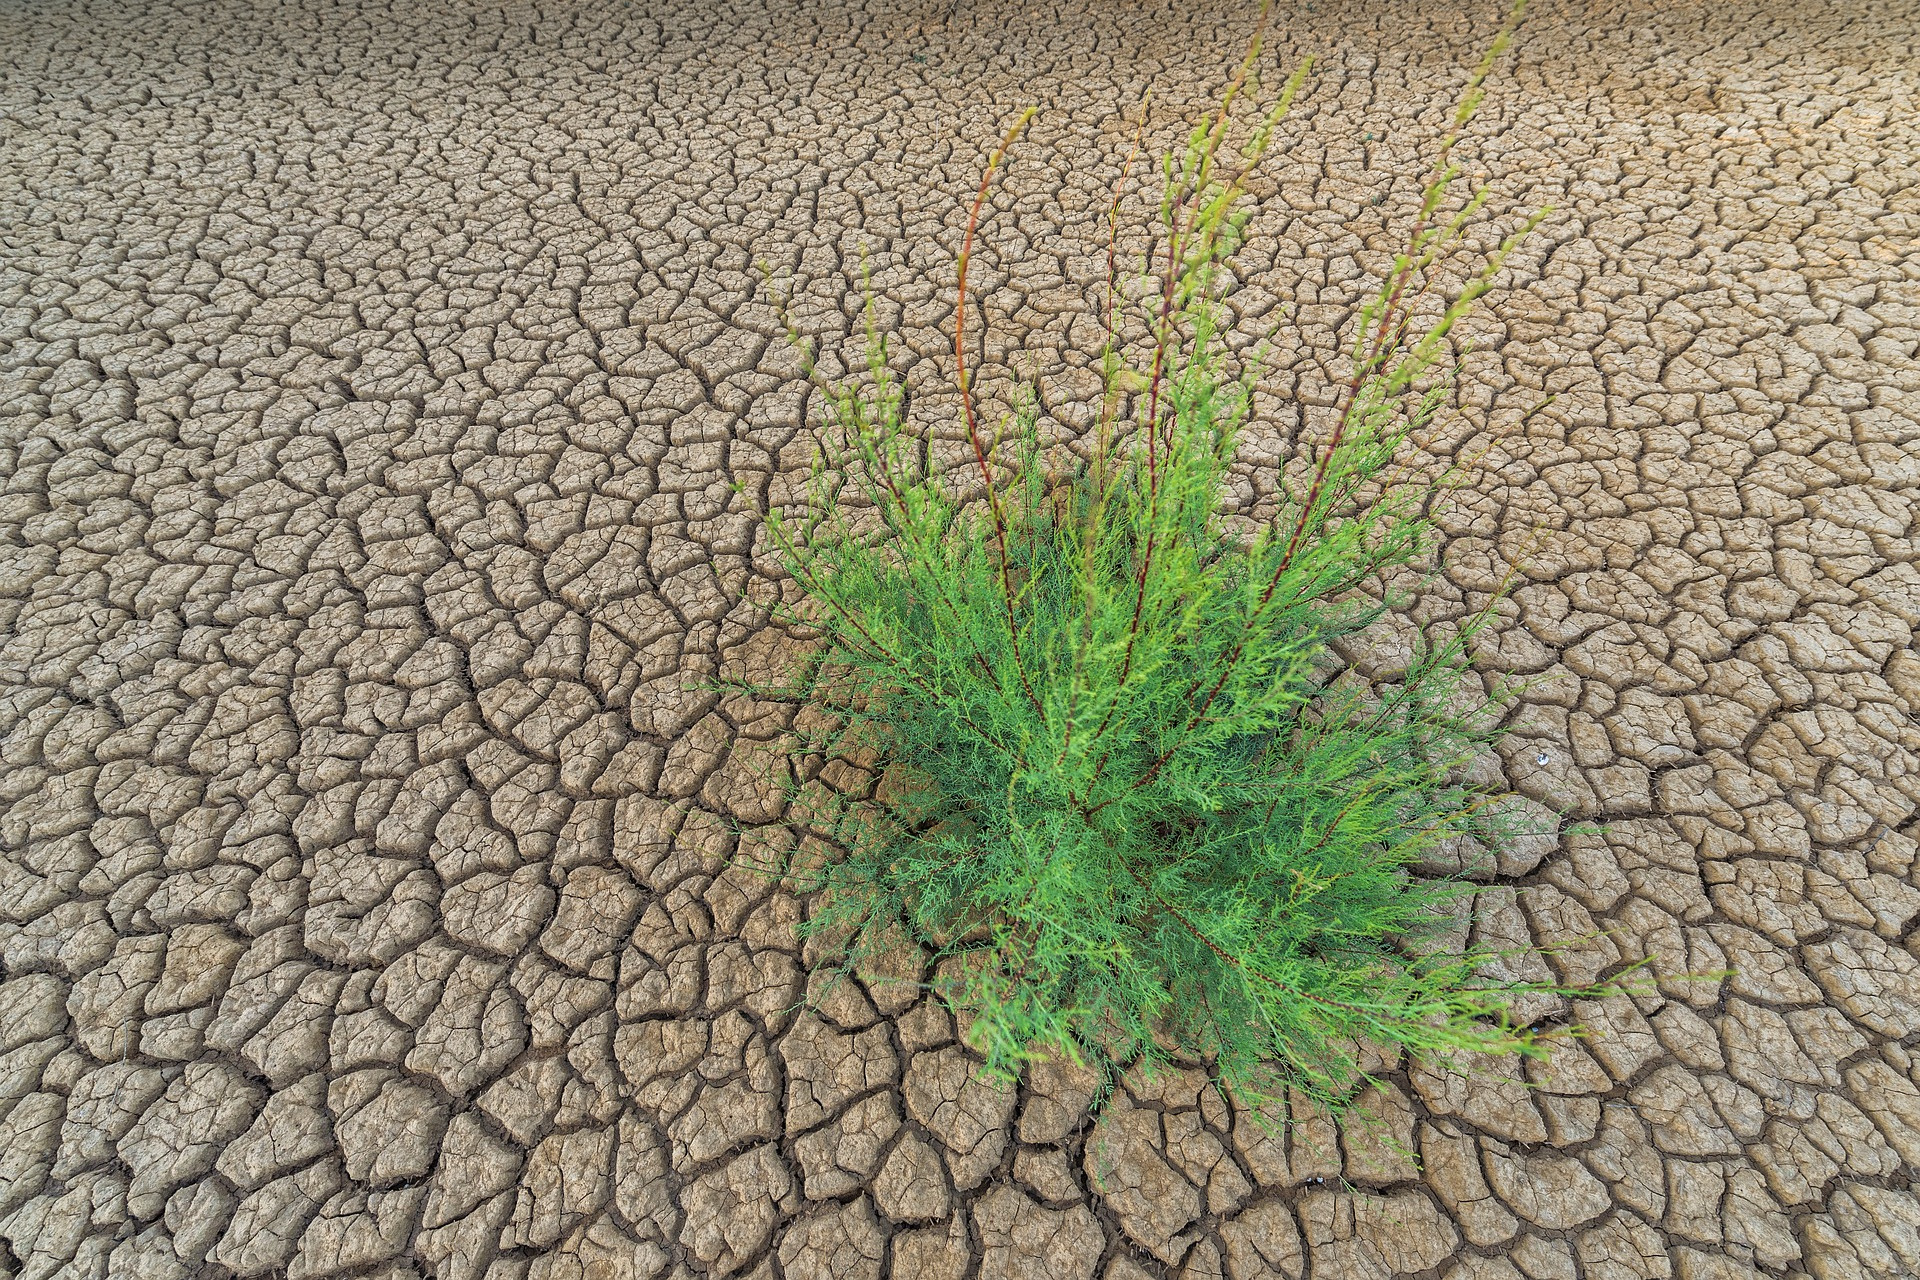 Desertification and drought in the world